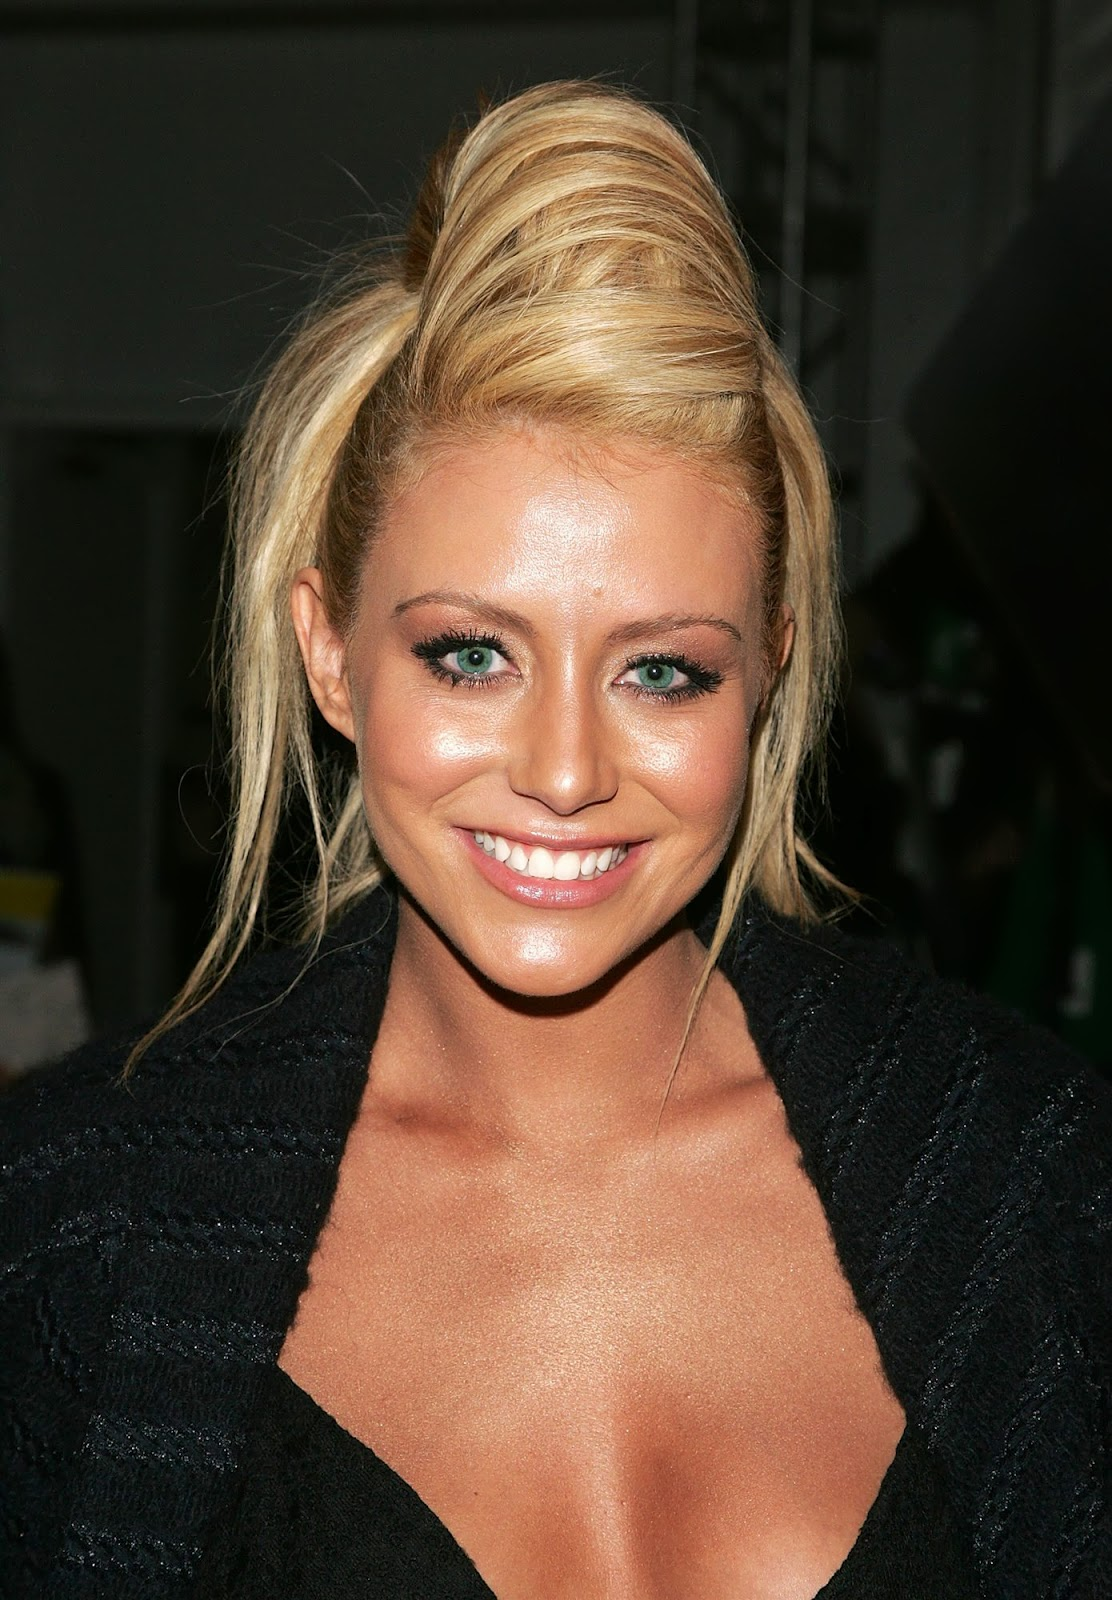 Gallery Nude Girls Sexy: Aubrey ODay Hot Images